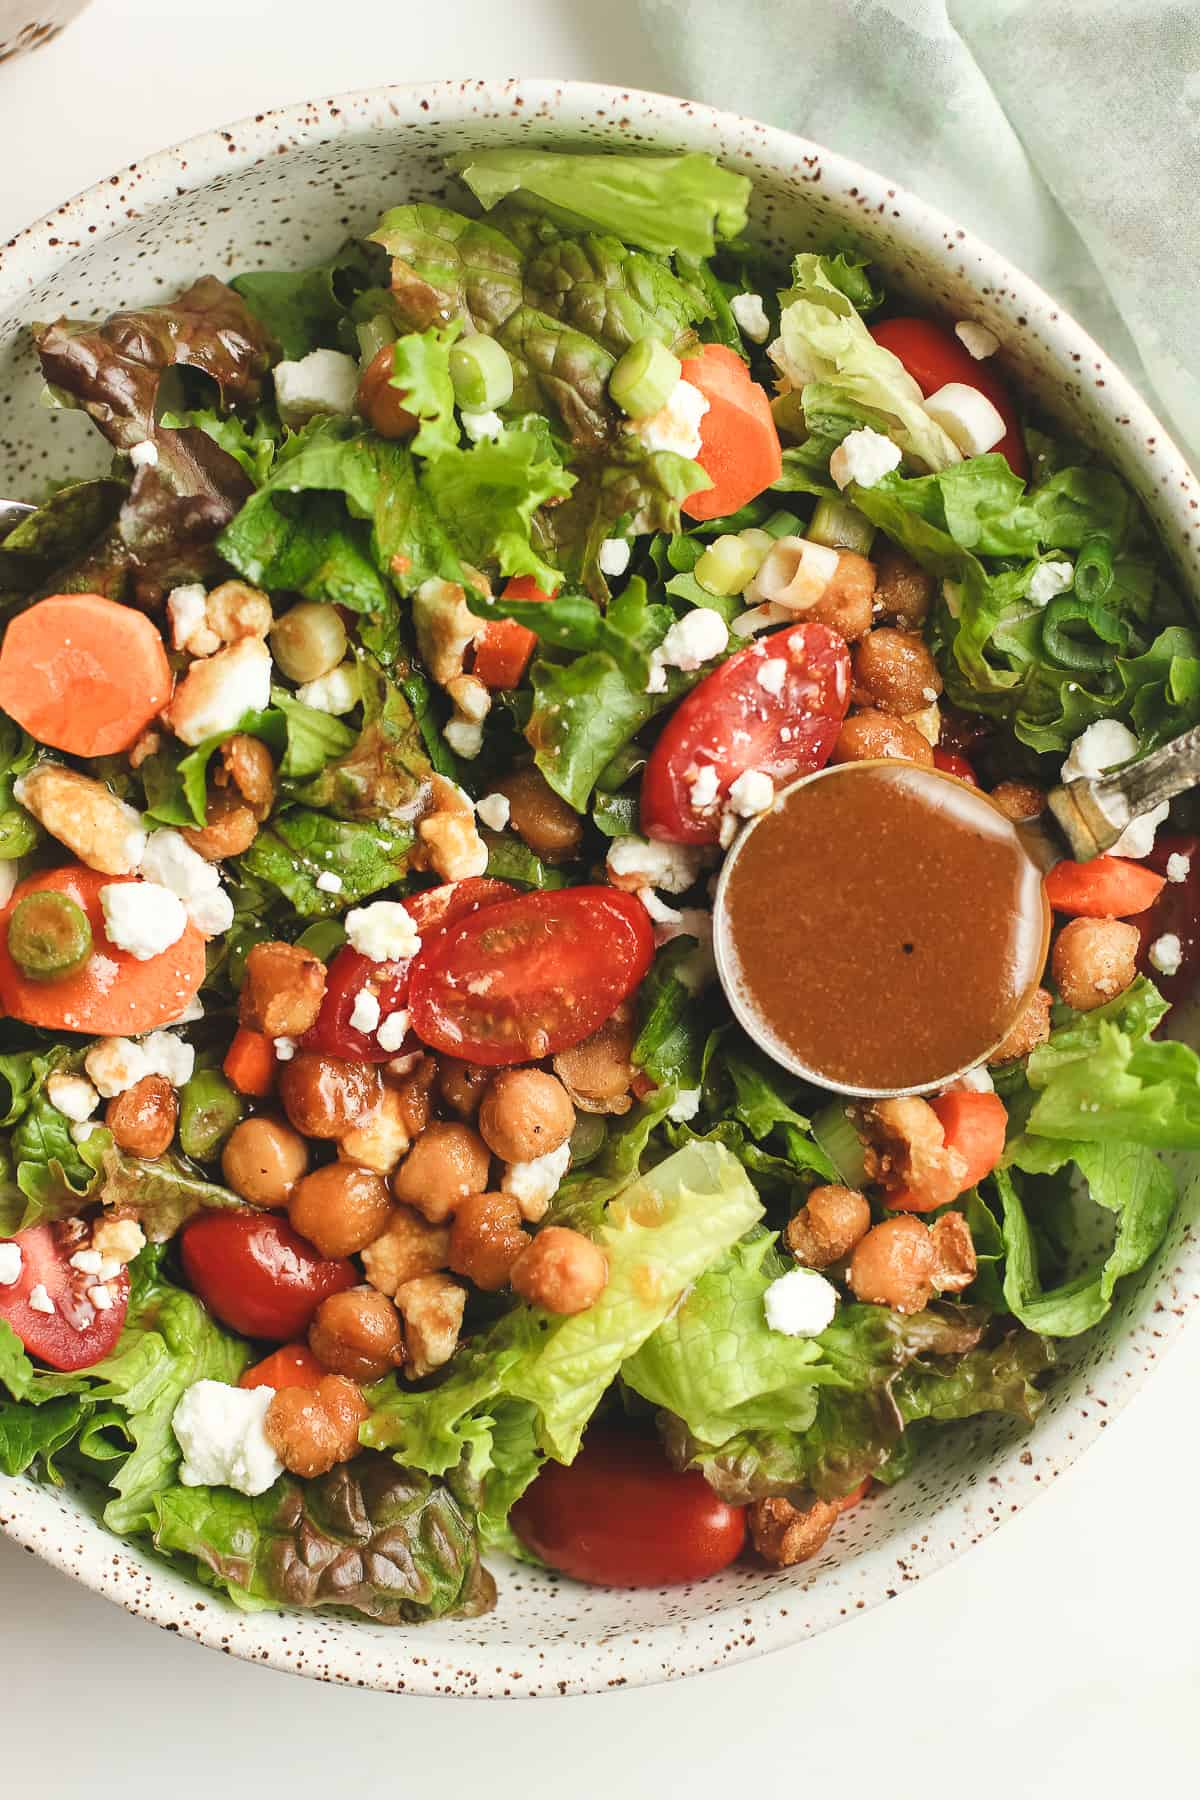 A green salad with some crispy chickpeas and some balsamic vinaigrette.